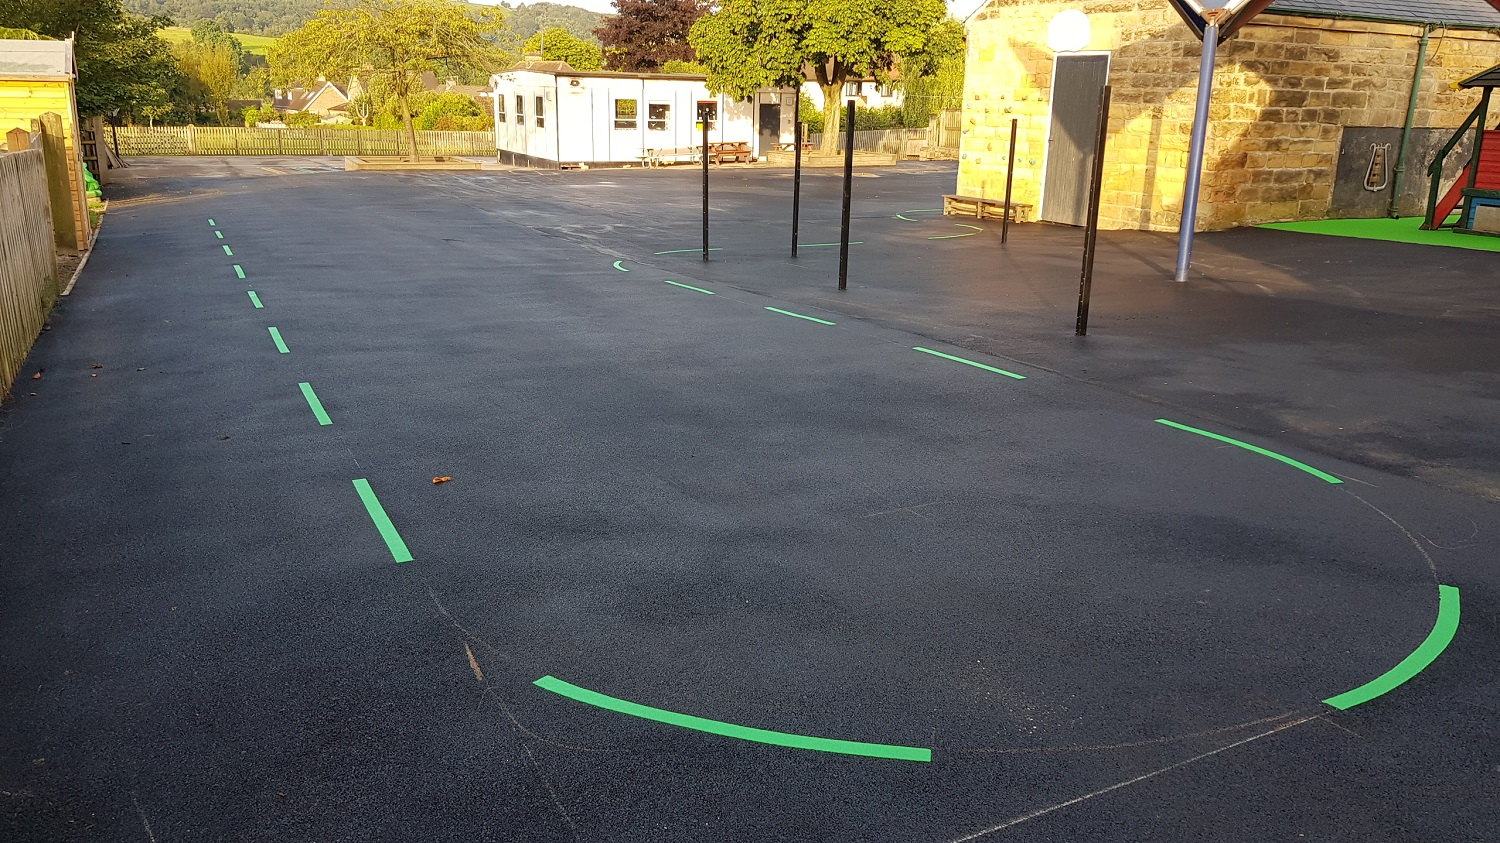 P23 Playground Tarmac Surfacing & Playground Markings at Ashover Primary School in Ashover